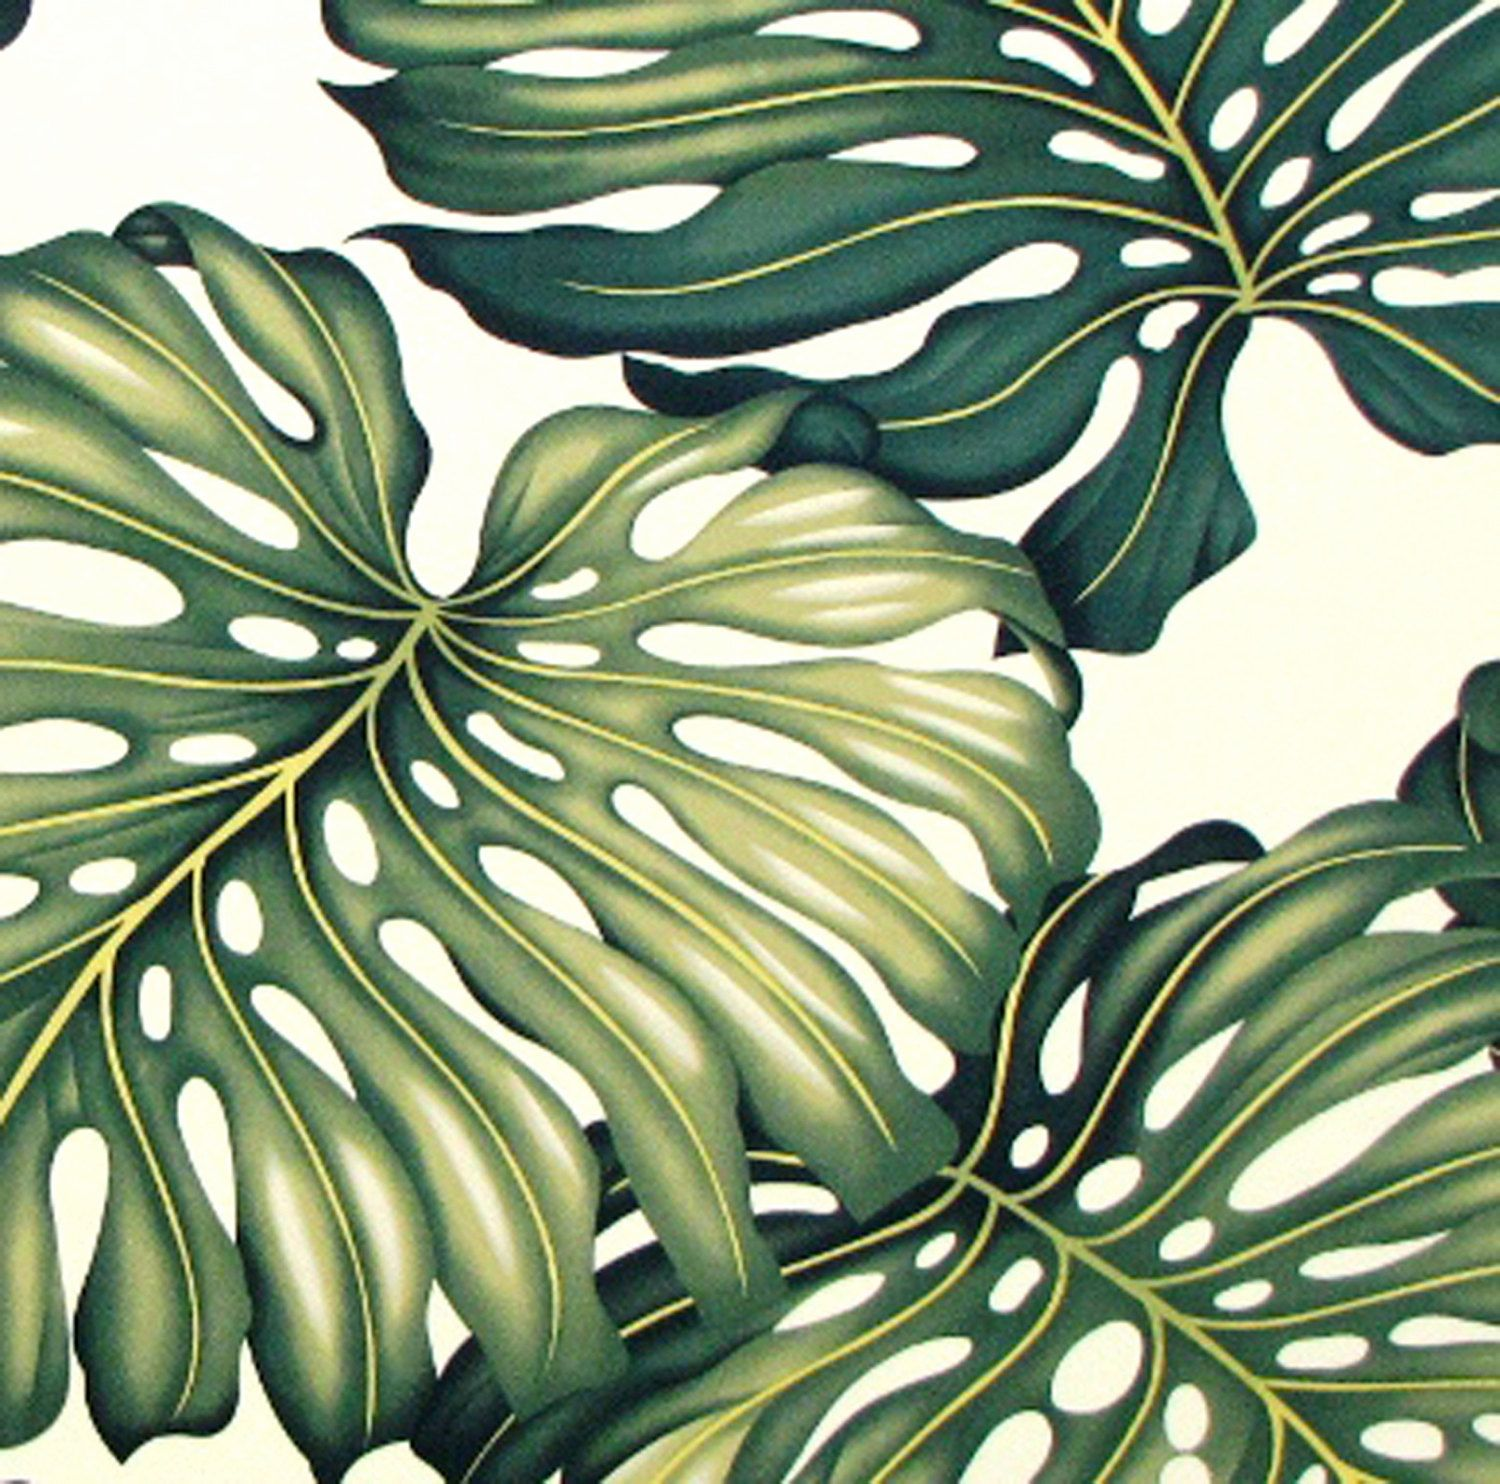 High Quality Tropical Leaf Upholstery Fabric Large Scale Monstera Furniture Fabric Home  Decor Hawaii High Quality Cotton